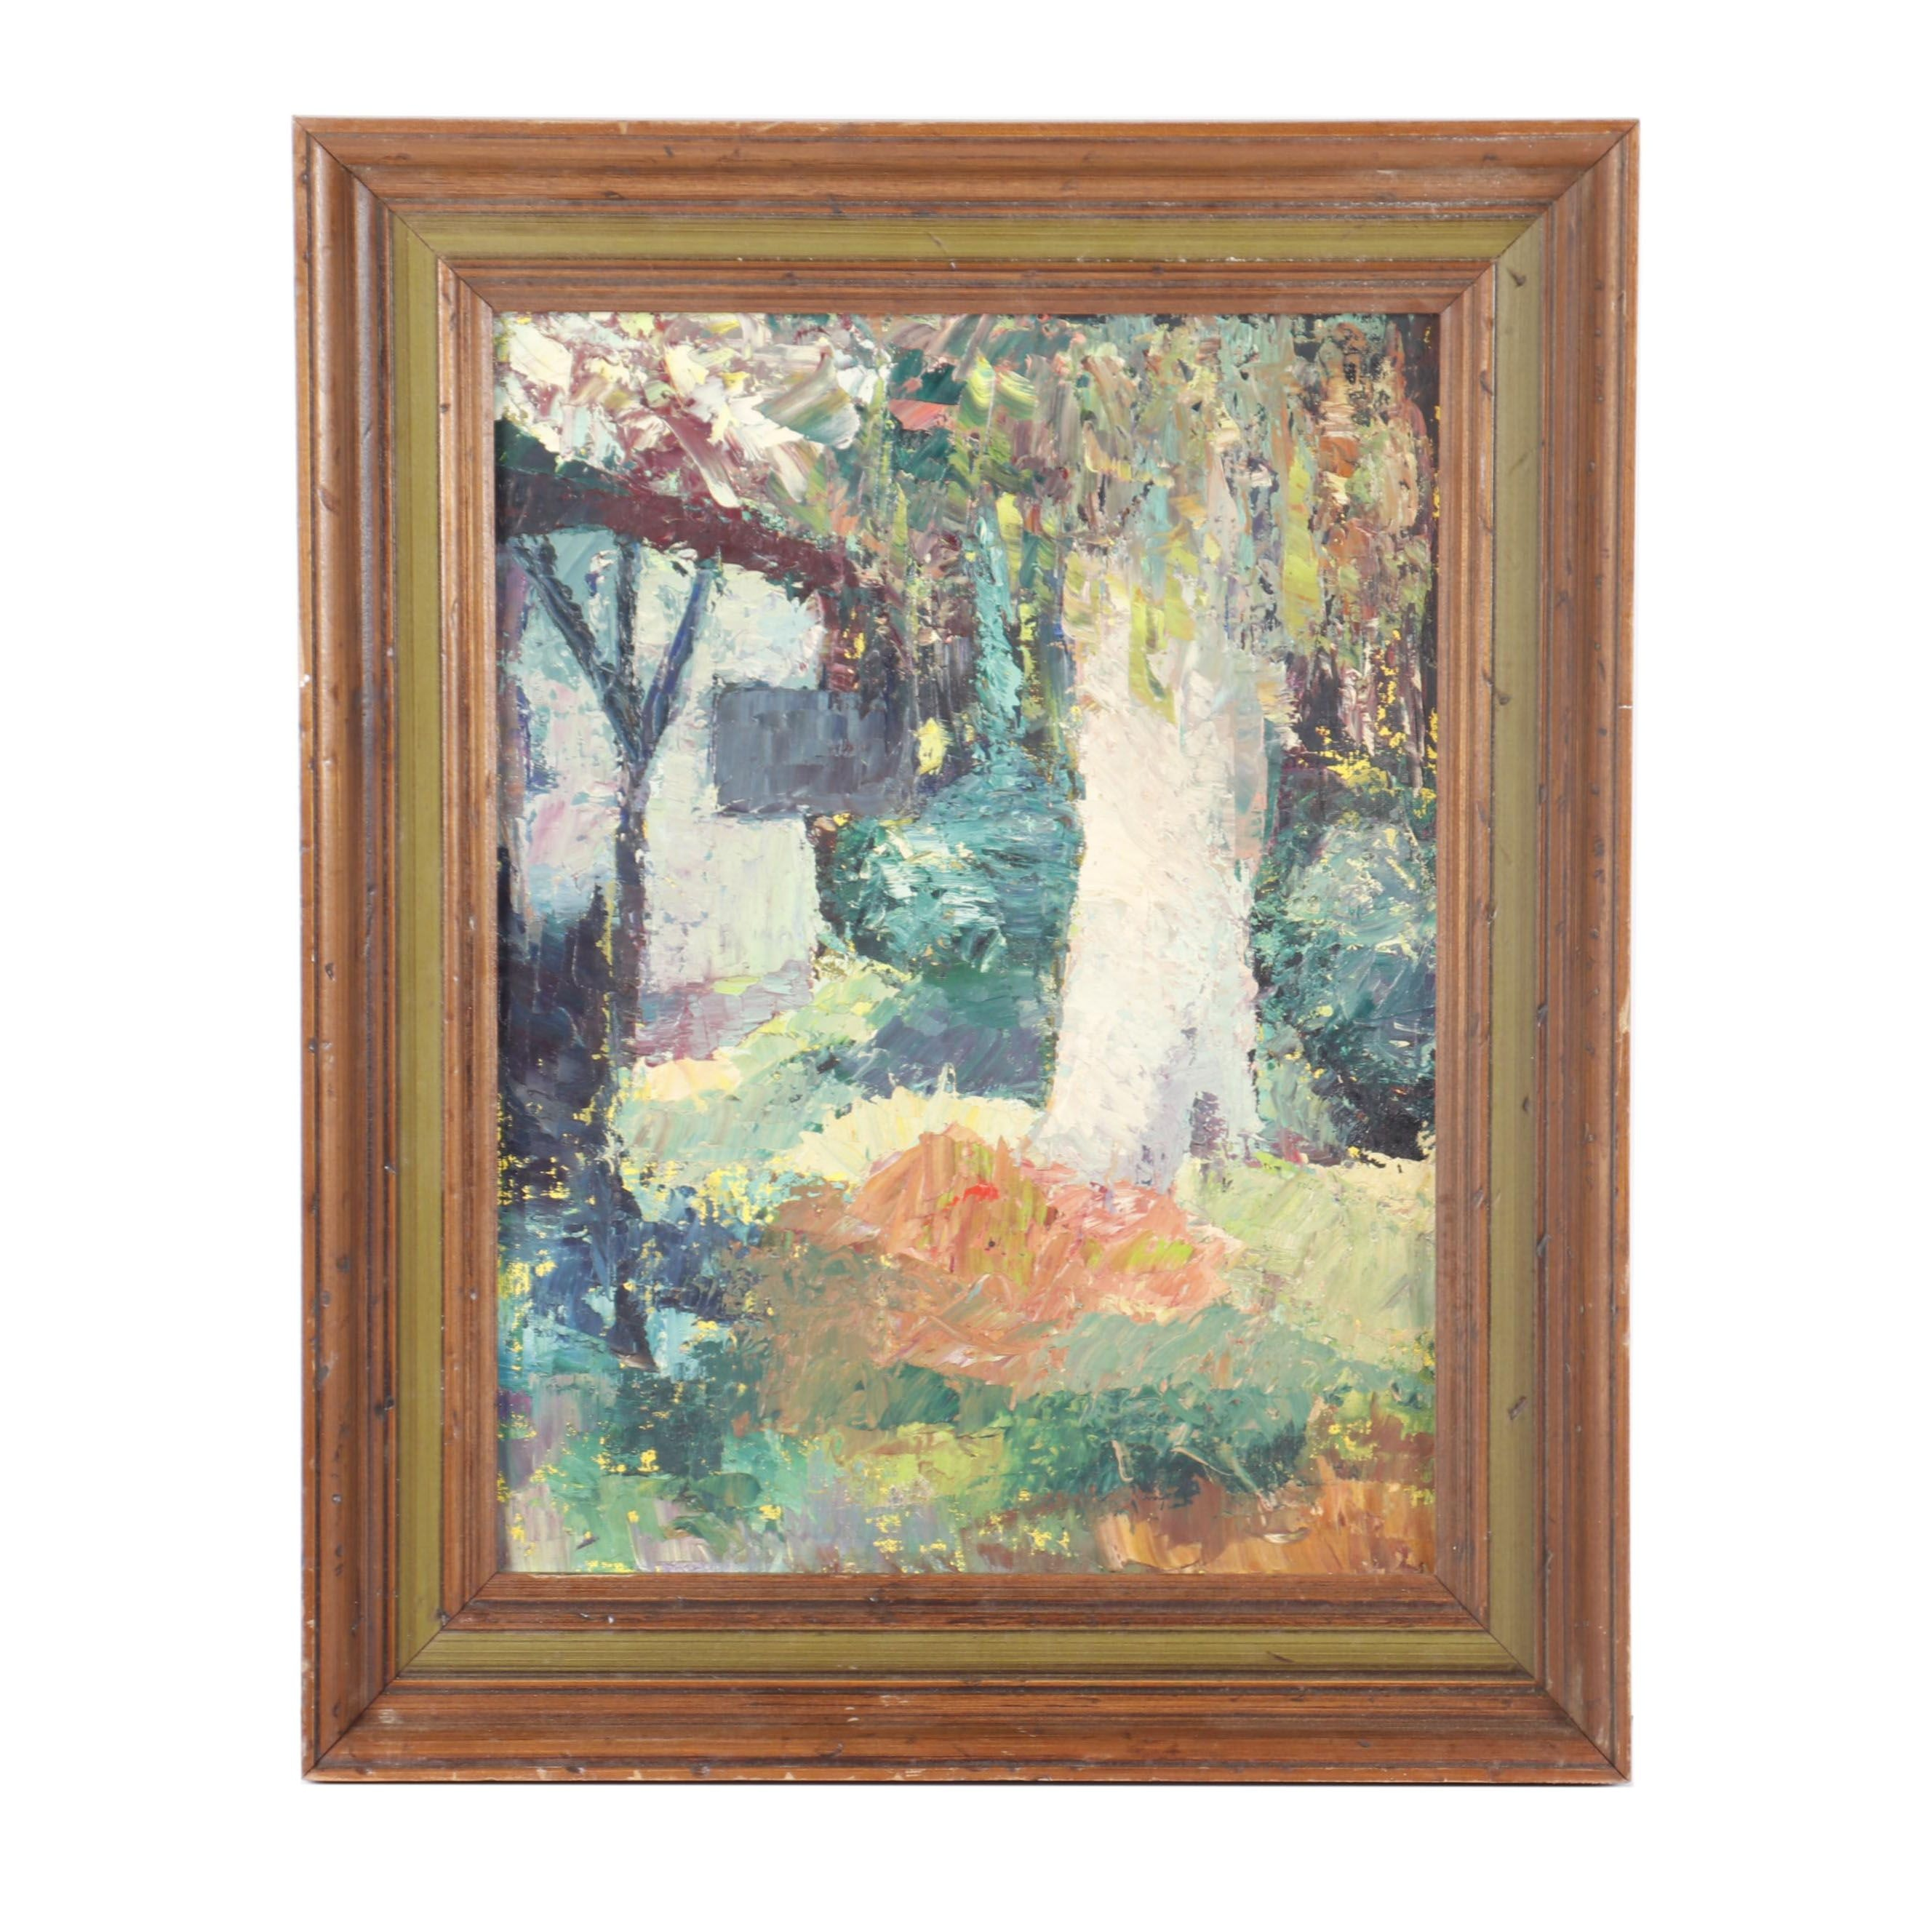 Landscape Oil Painting in the Manner of Leon Gaspard